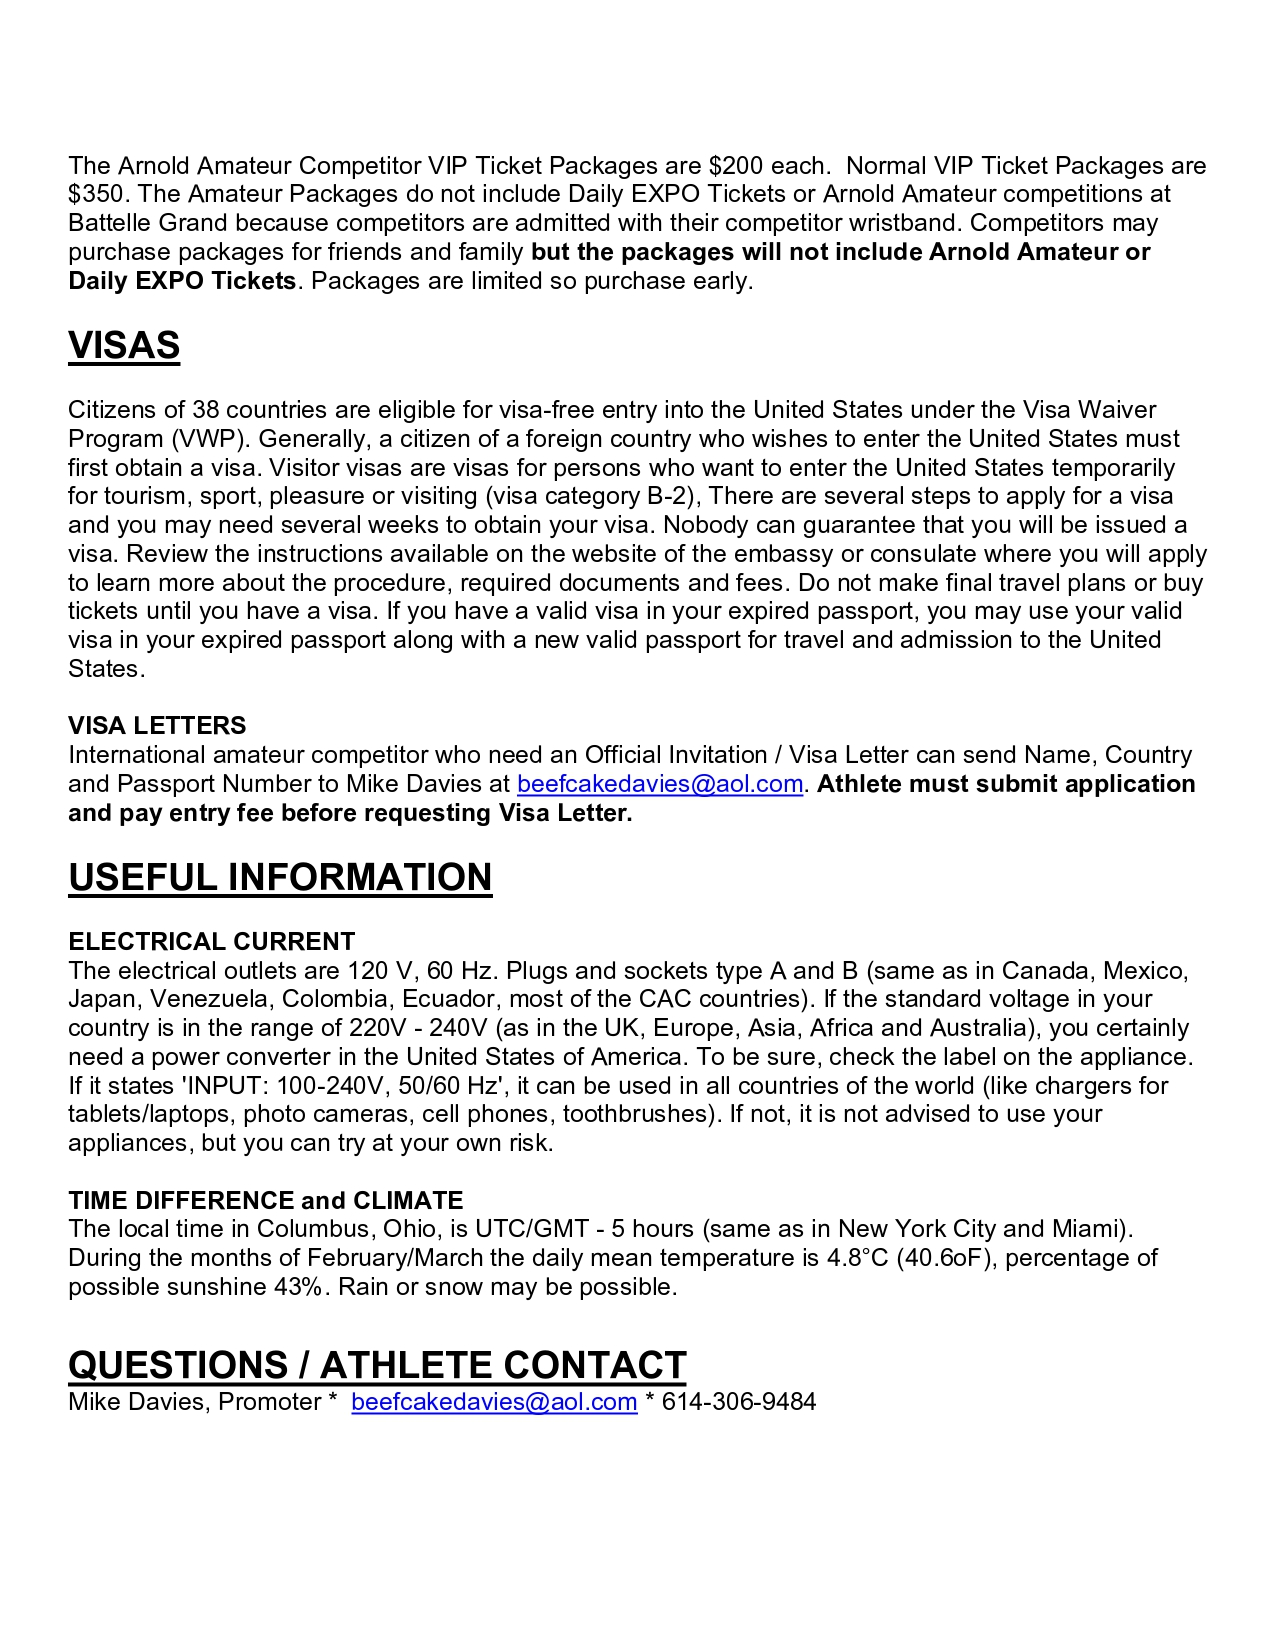 2021-Arnold-Amateur-Competitor-Information-8.3.21_page-0007